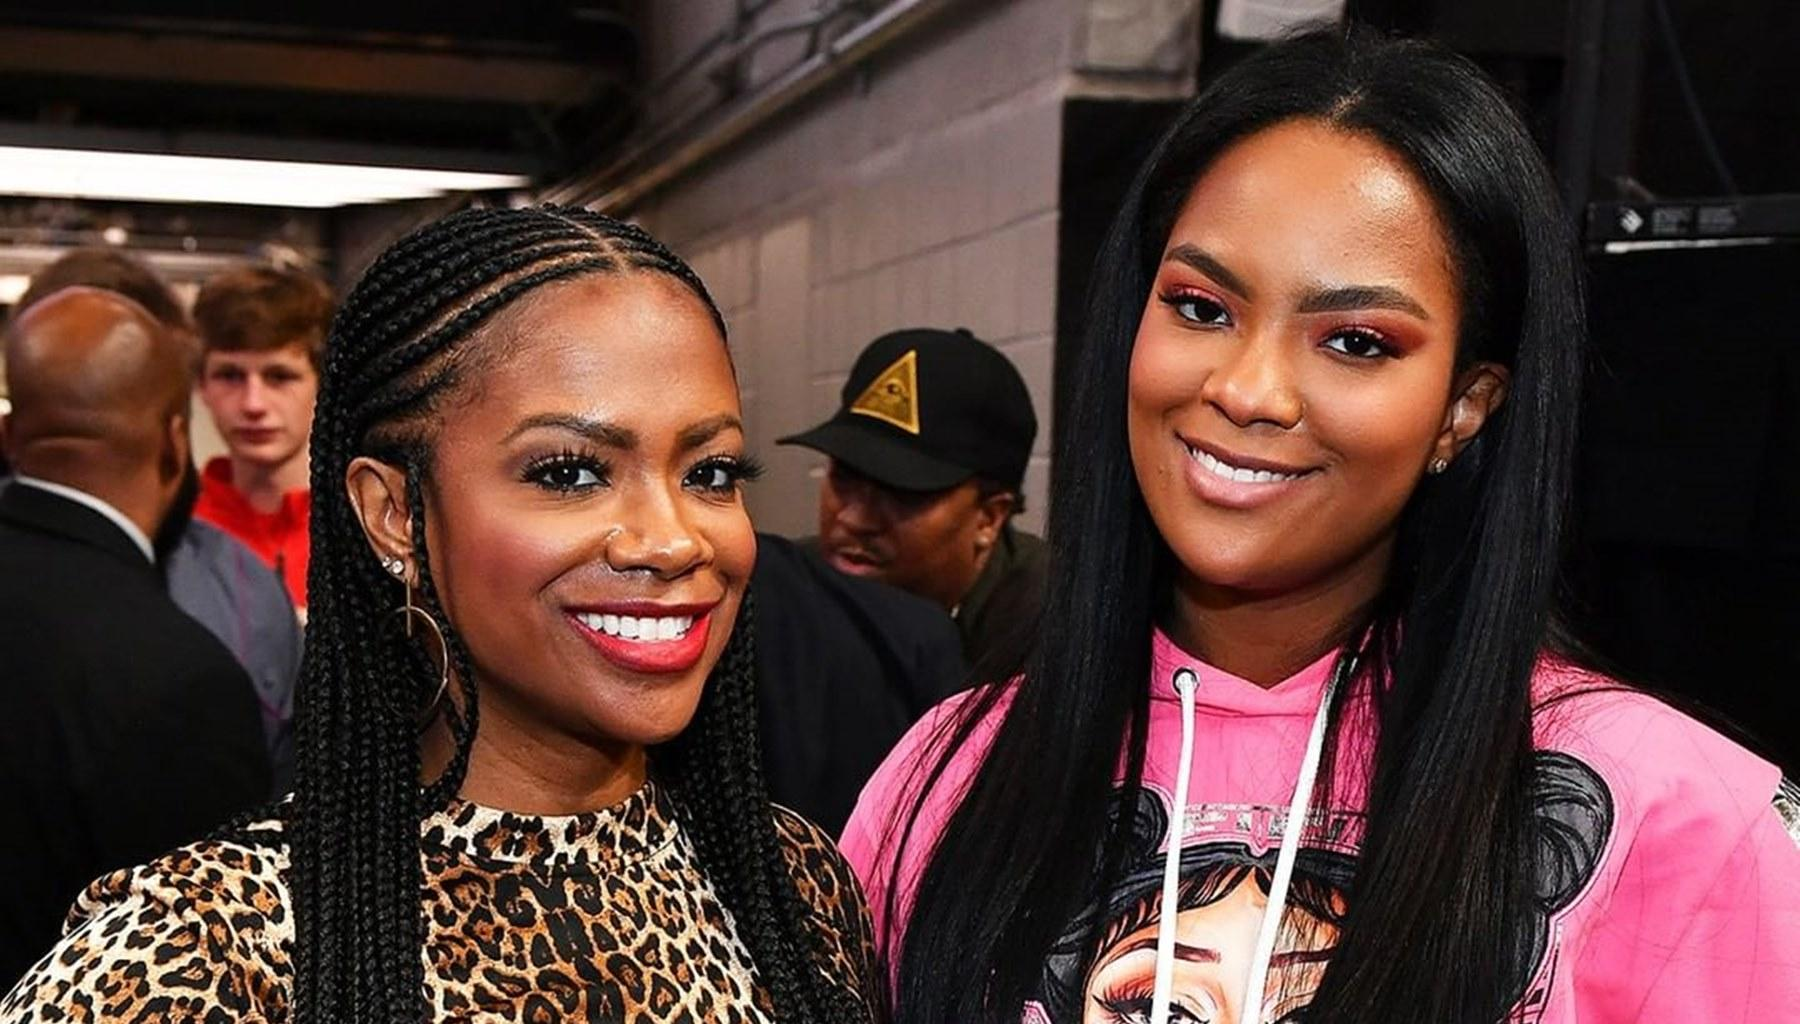 Kandi Burruss Gets Emotional In New Video Where She Confessed That Her Family Judged Her For Having Her Baby Daughter, Blaze Tucker, Via A Surrogate